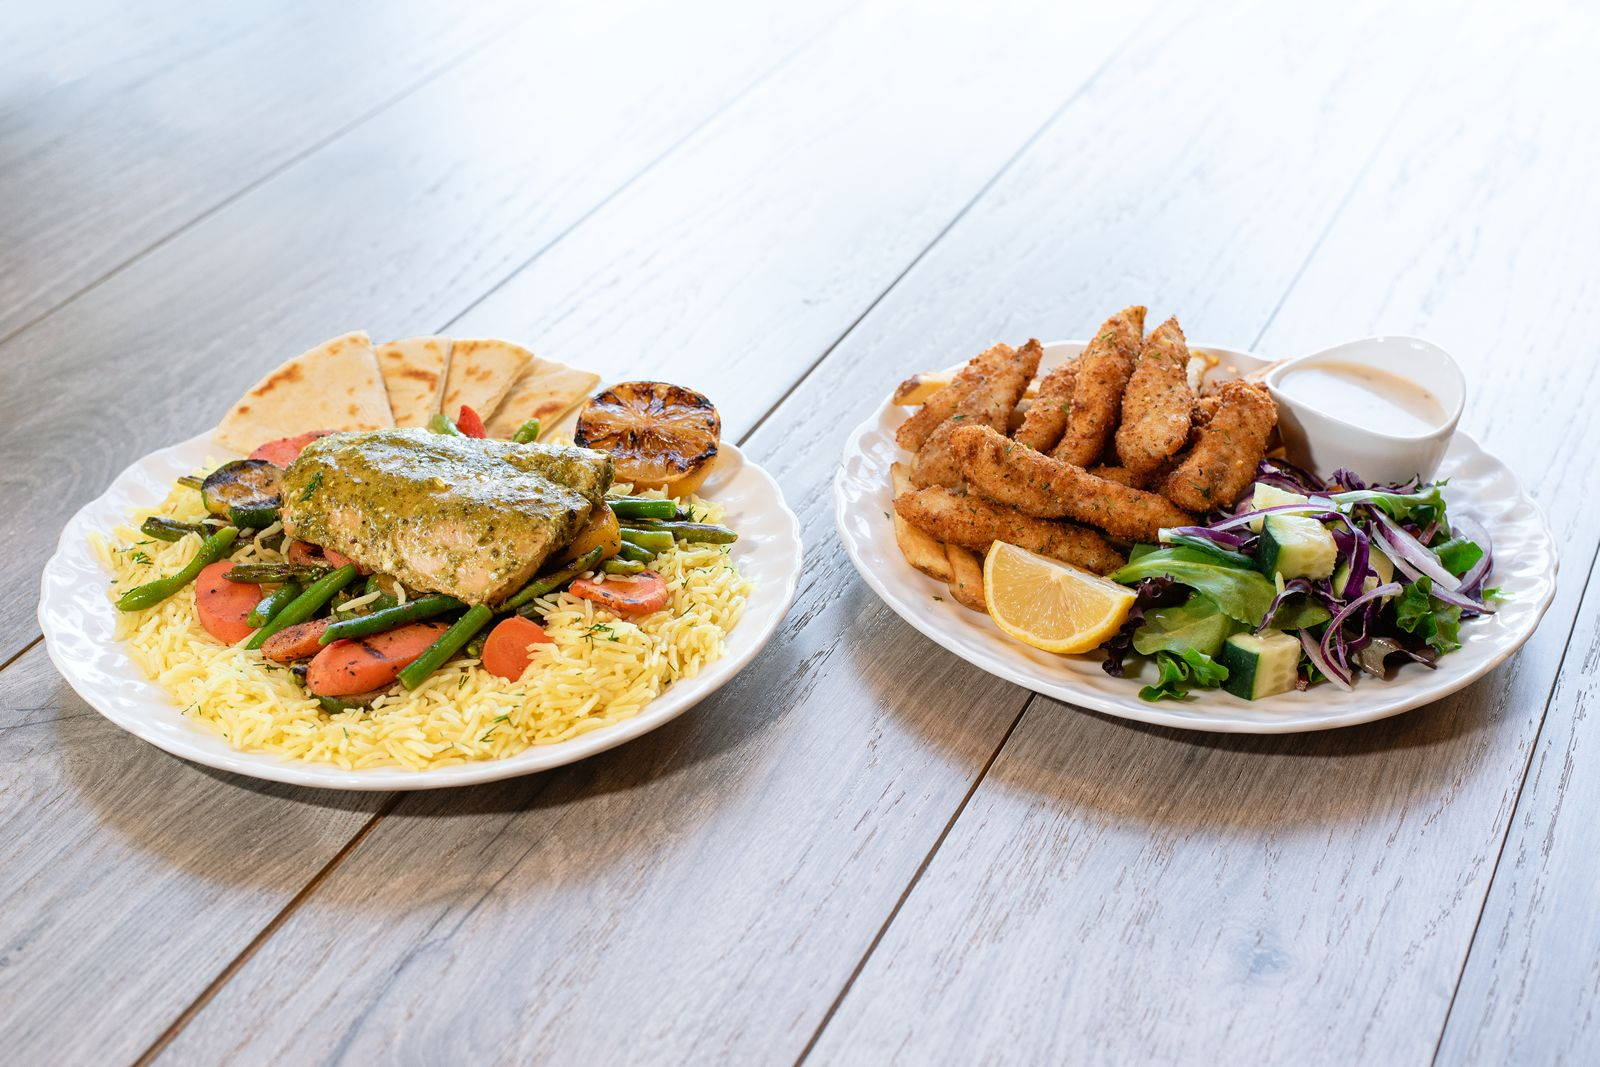 The new Mediterranean-inspired dishes which showcase wild-caught Alaskan salmon and breaded white fish will be available at all Daphne's restaurants through July 5, 2021.